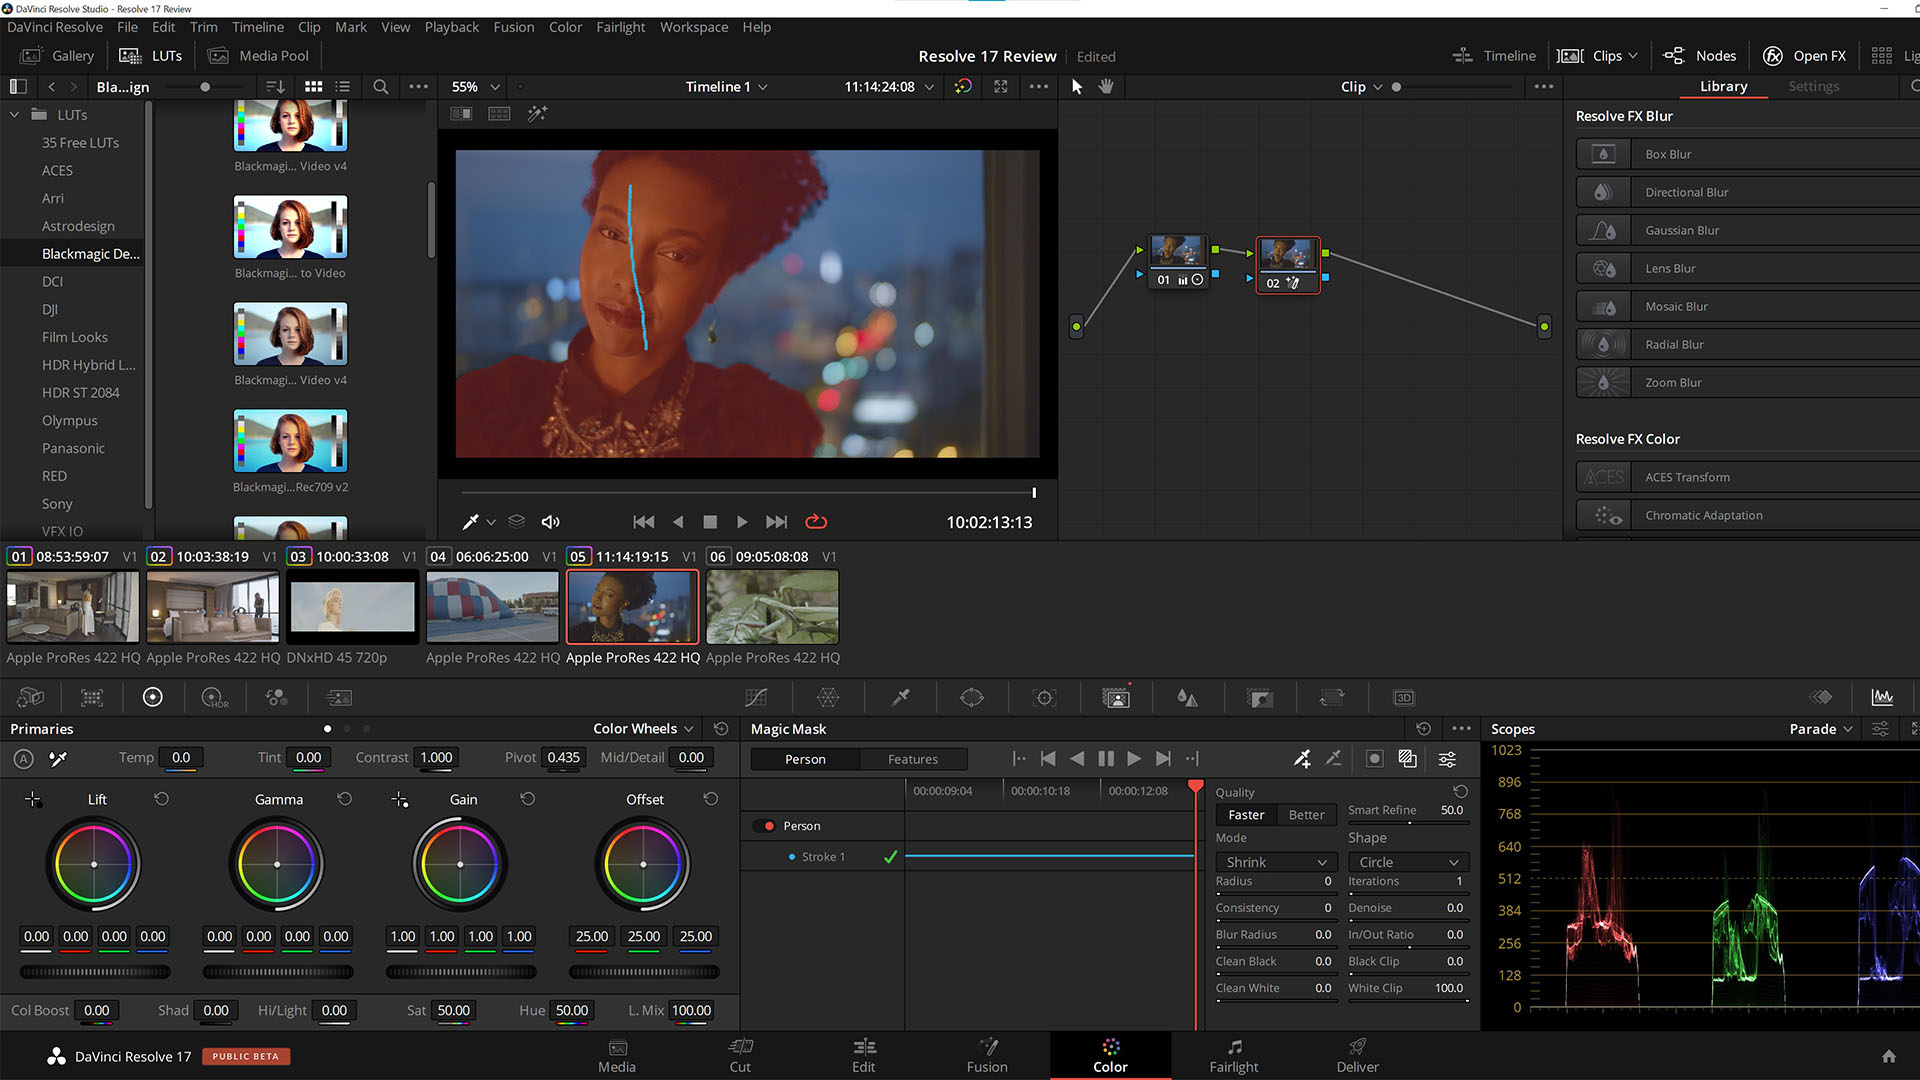 The new Magic Mask tool. Media files courtesy John Brawley, Peter Nearhos and Blackmagic Design.